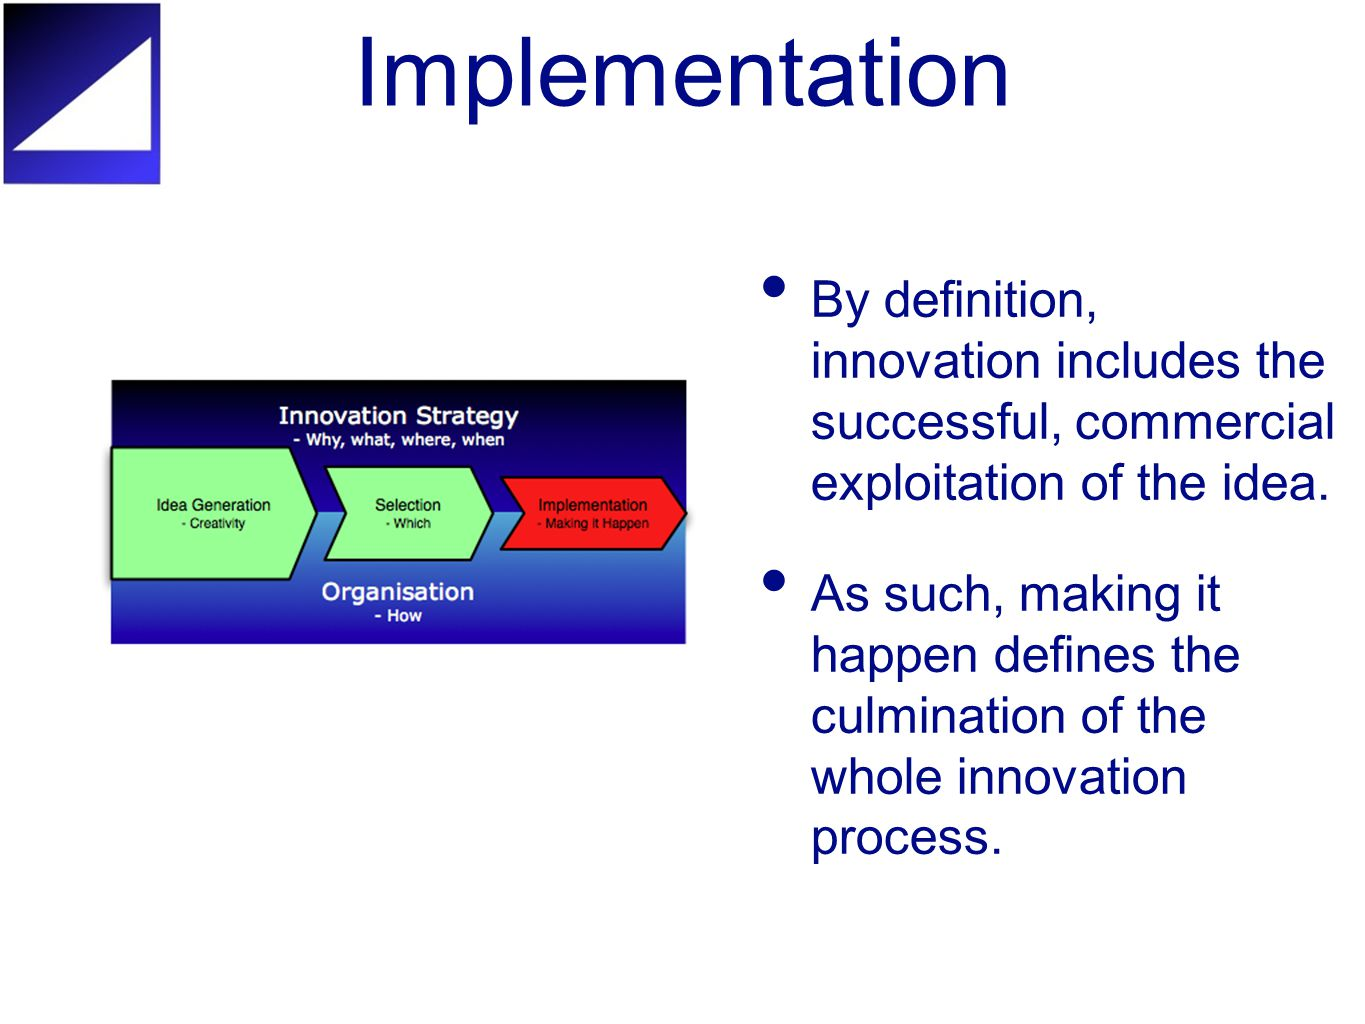 Implementation By definition, innovation includes the successful, commercial exploitation of the idea.